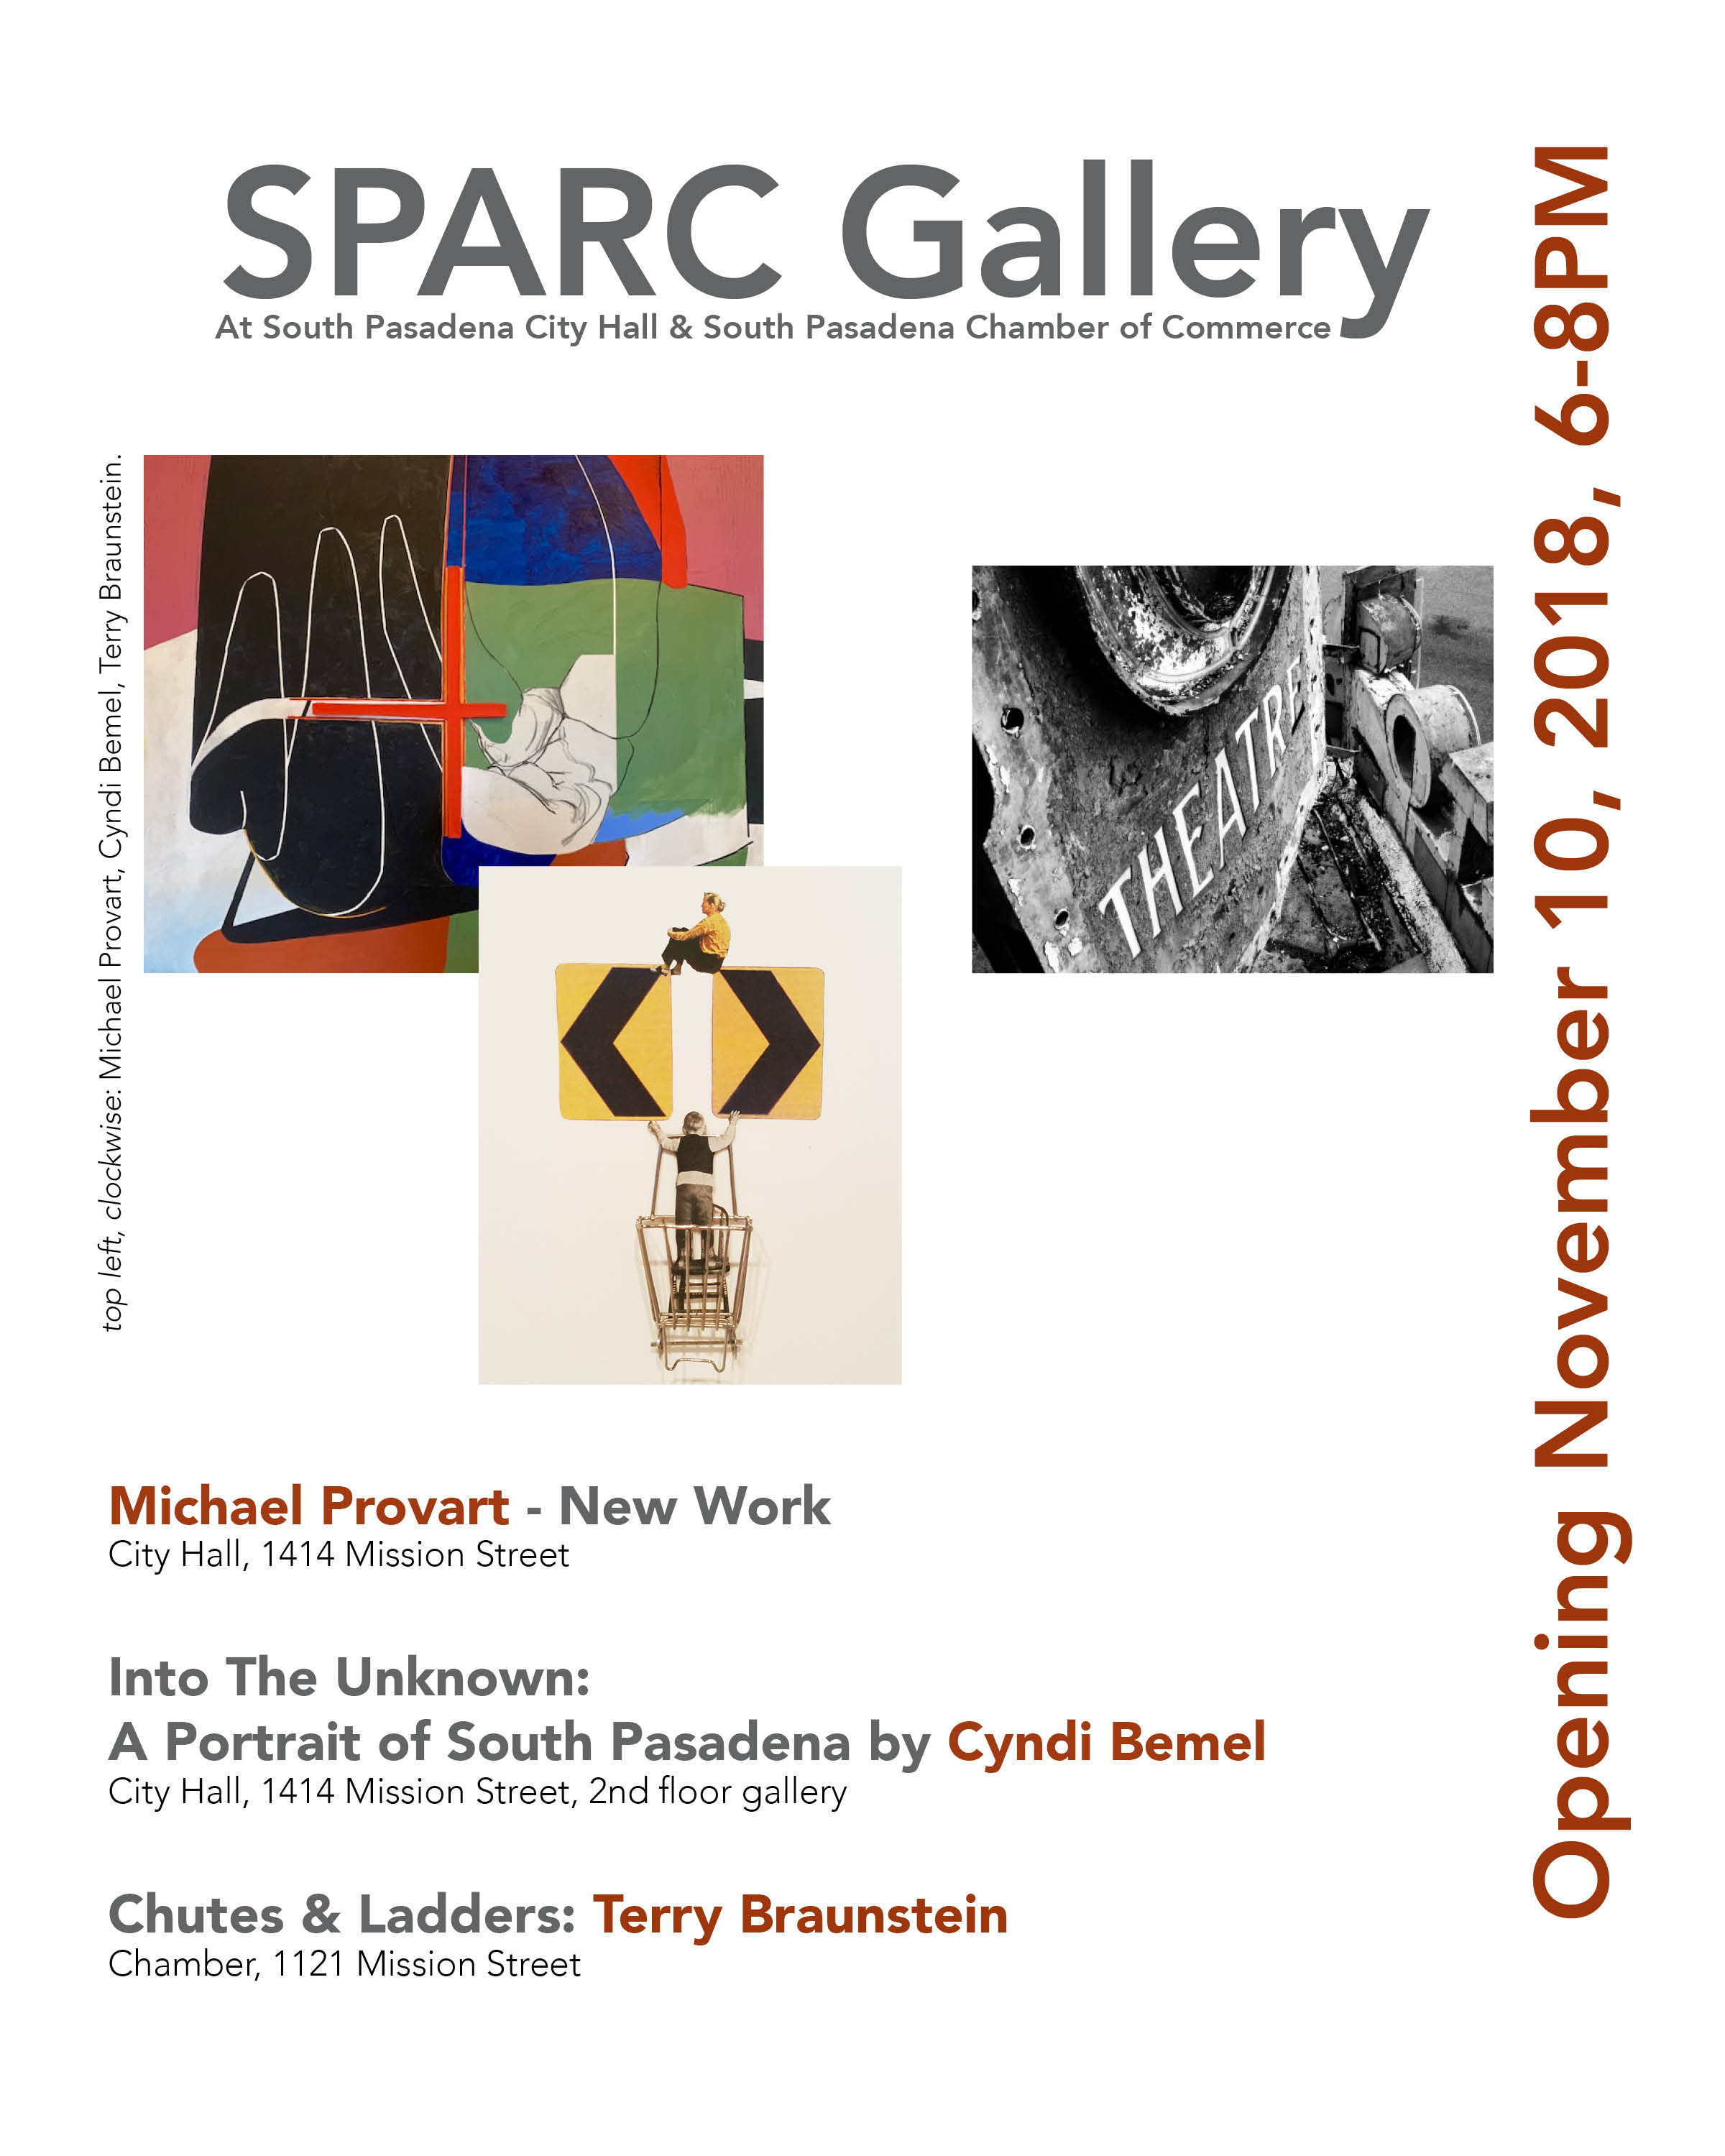 SPARC Gallery 11_10_18 Announcement2.jpg